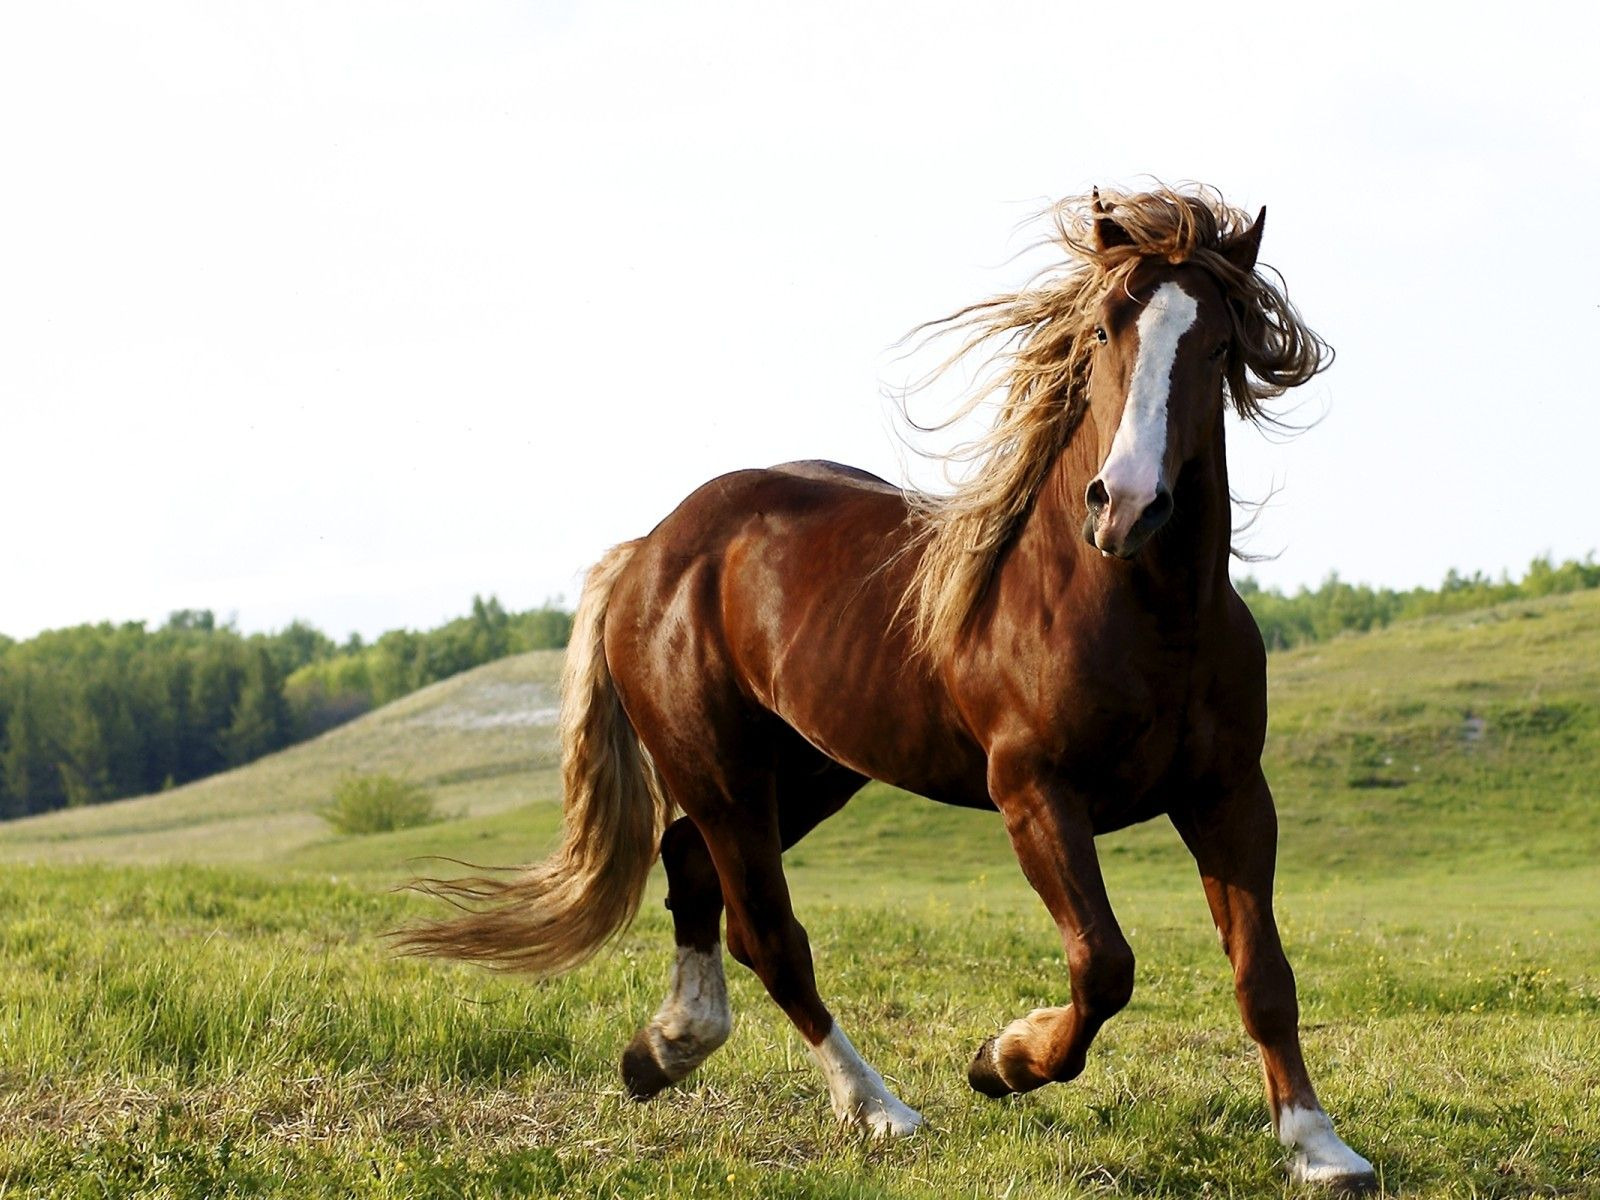 horseback riding | Horse Riding Brown Horse Running Free On The ...